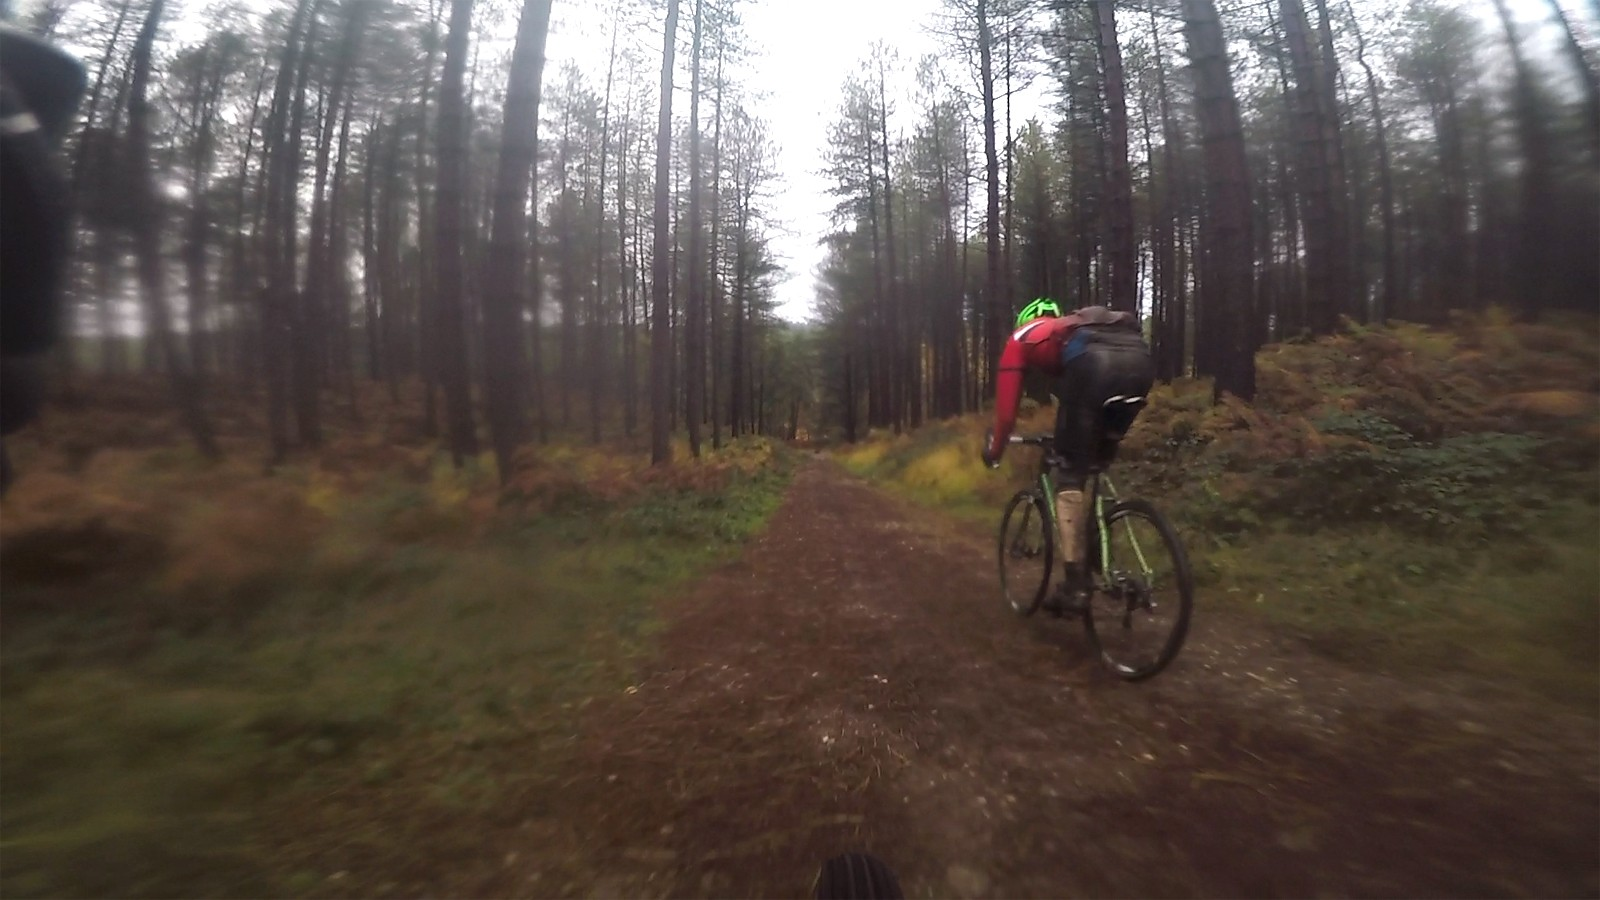 A few descents were approached with little control as the combination of sandy soil and rain had made short work of my brake pads